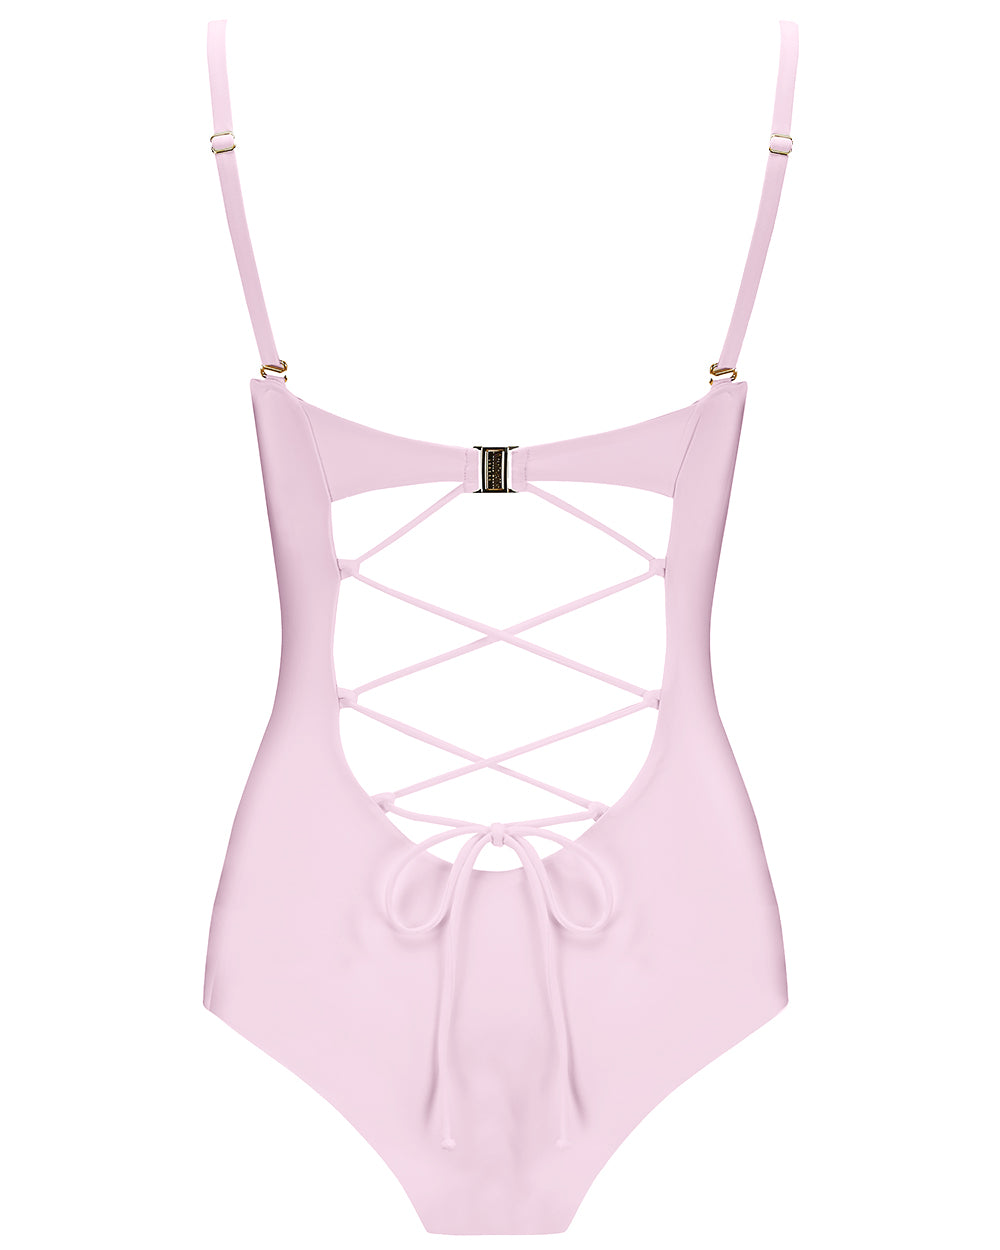 The 9.2.9 Swimsuit - Bonbon Pink